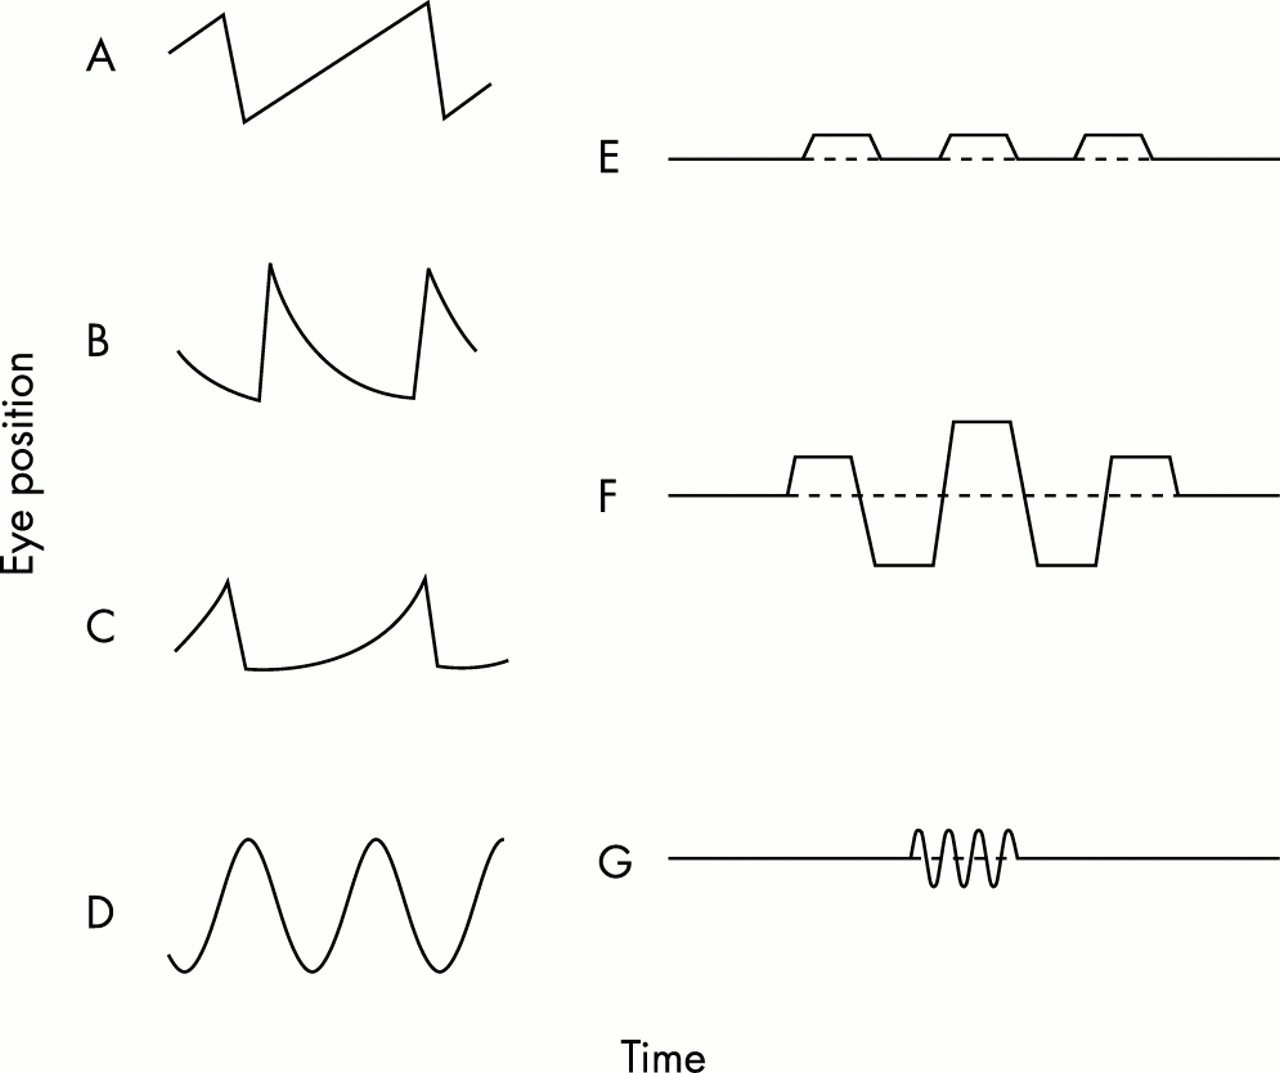 Diagnostic value of nystagmus: spontaneous and induced ocular